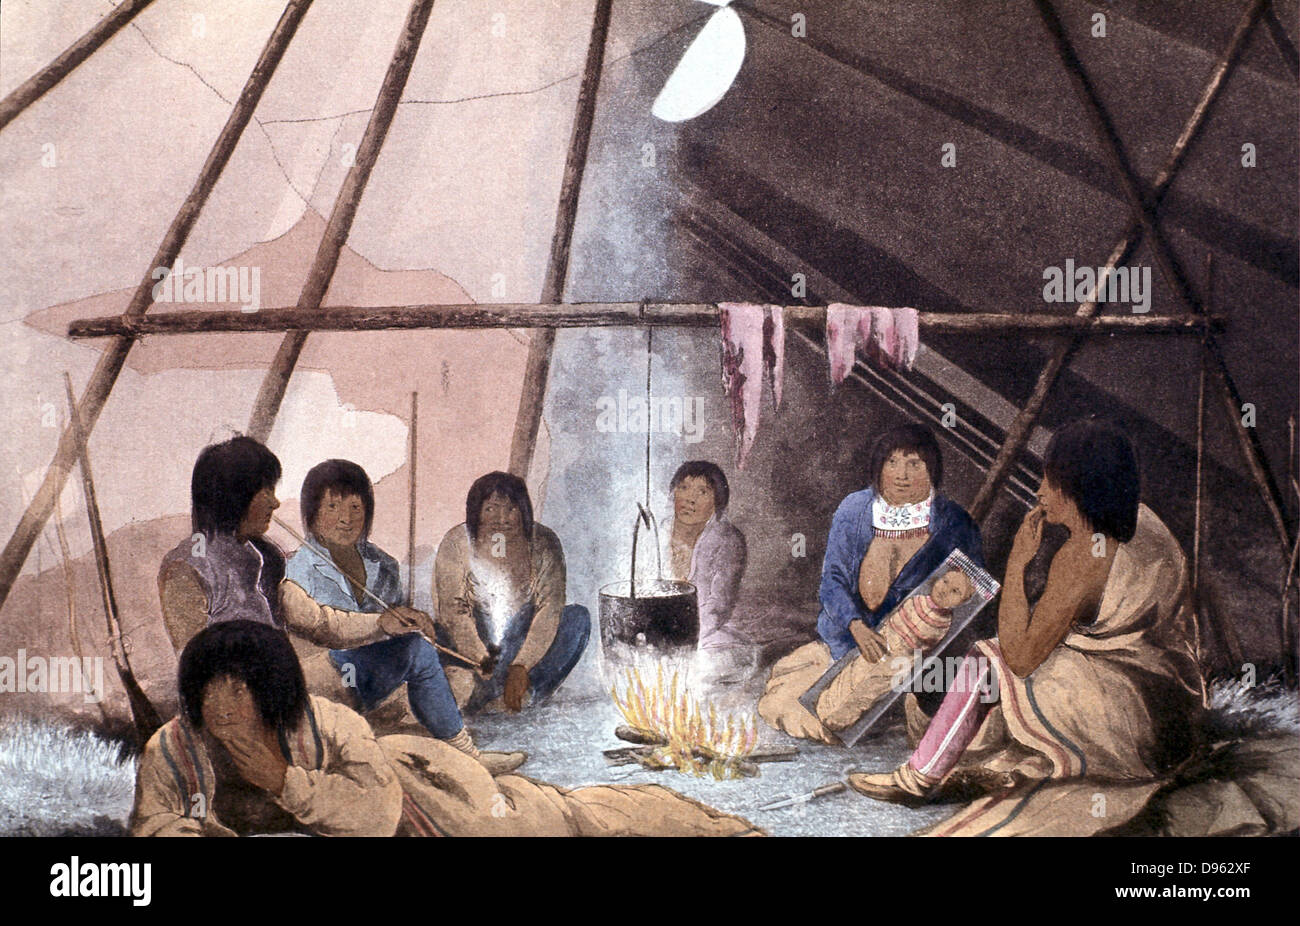 Interior of Cree Indian tent. Man smoking Papoose in u0027cradleu0027 Cooking pot suspended over fire. From John Franklin u0027Narrative & Interior of Cree Indian tent. Man smoking: Papoose in u0027cradle ...